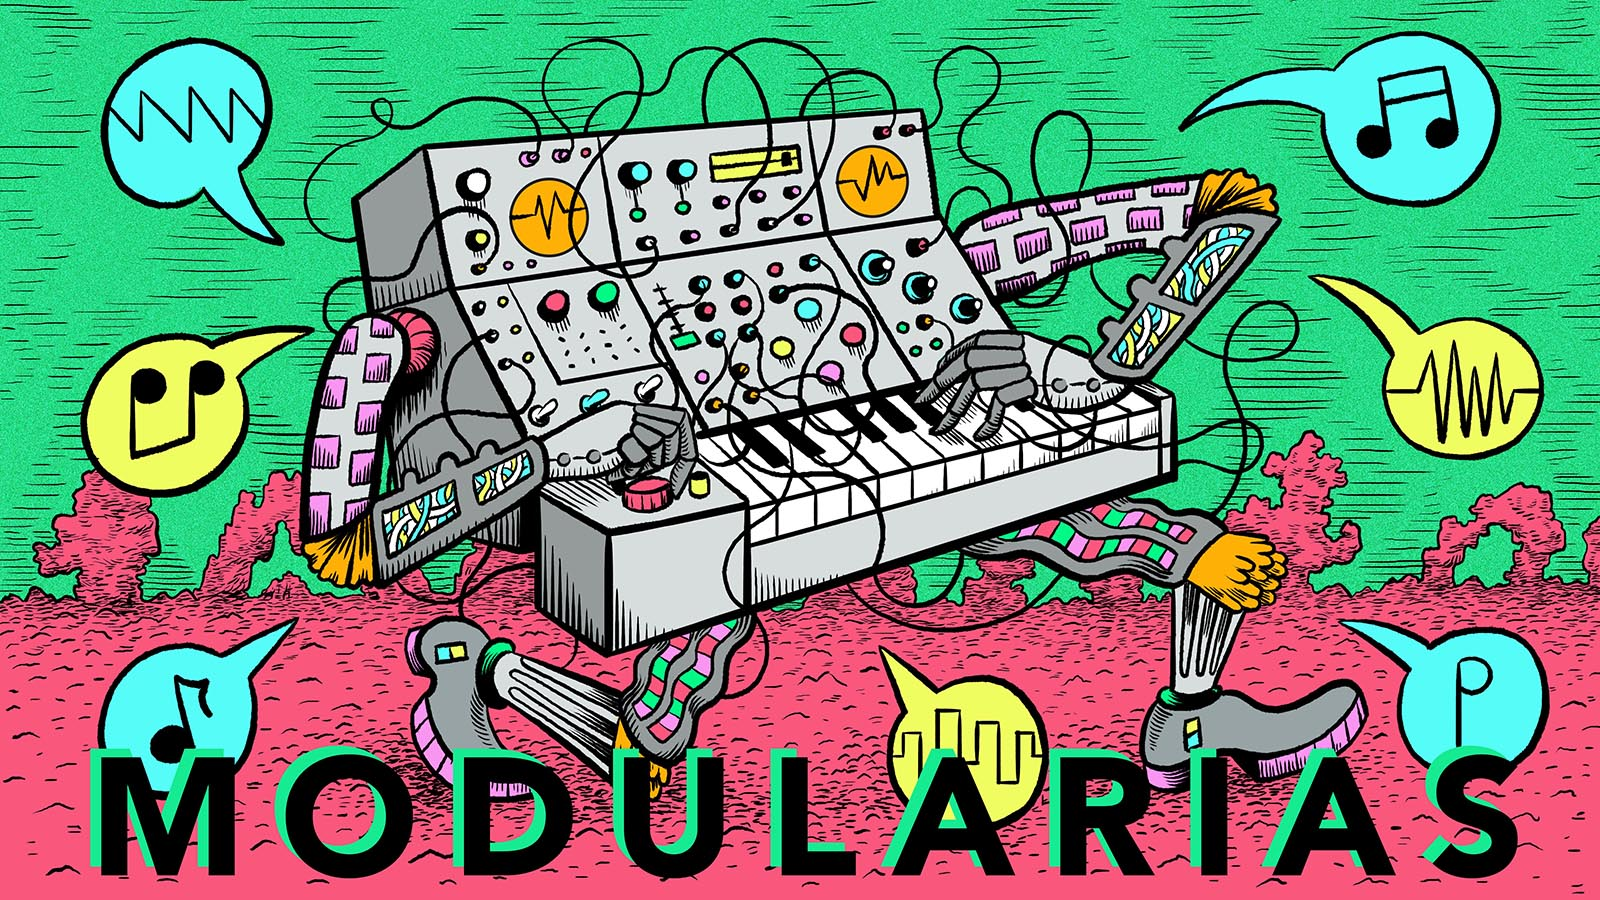 Modular synthesizer clipart svg black and white library Modularias – Experiments In Opera svg black and white library